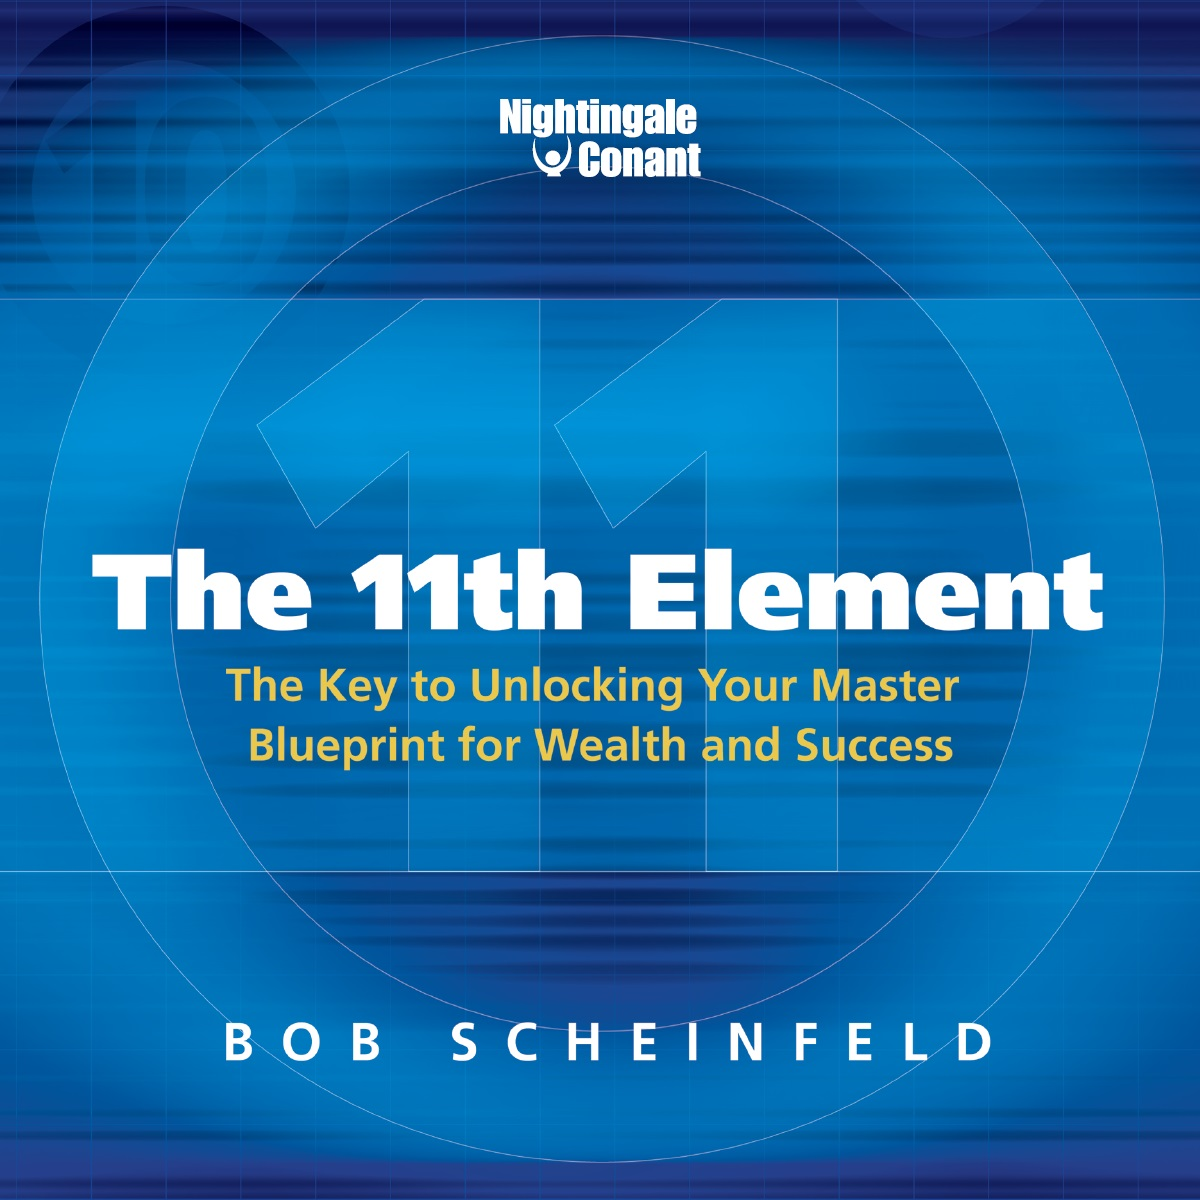 The 11th Element